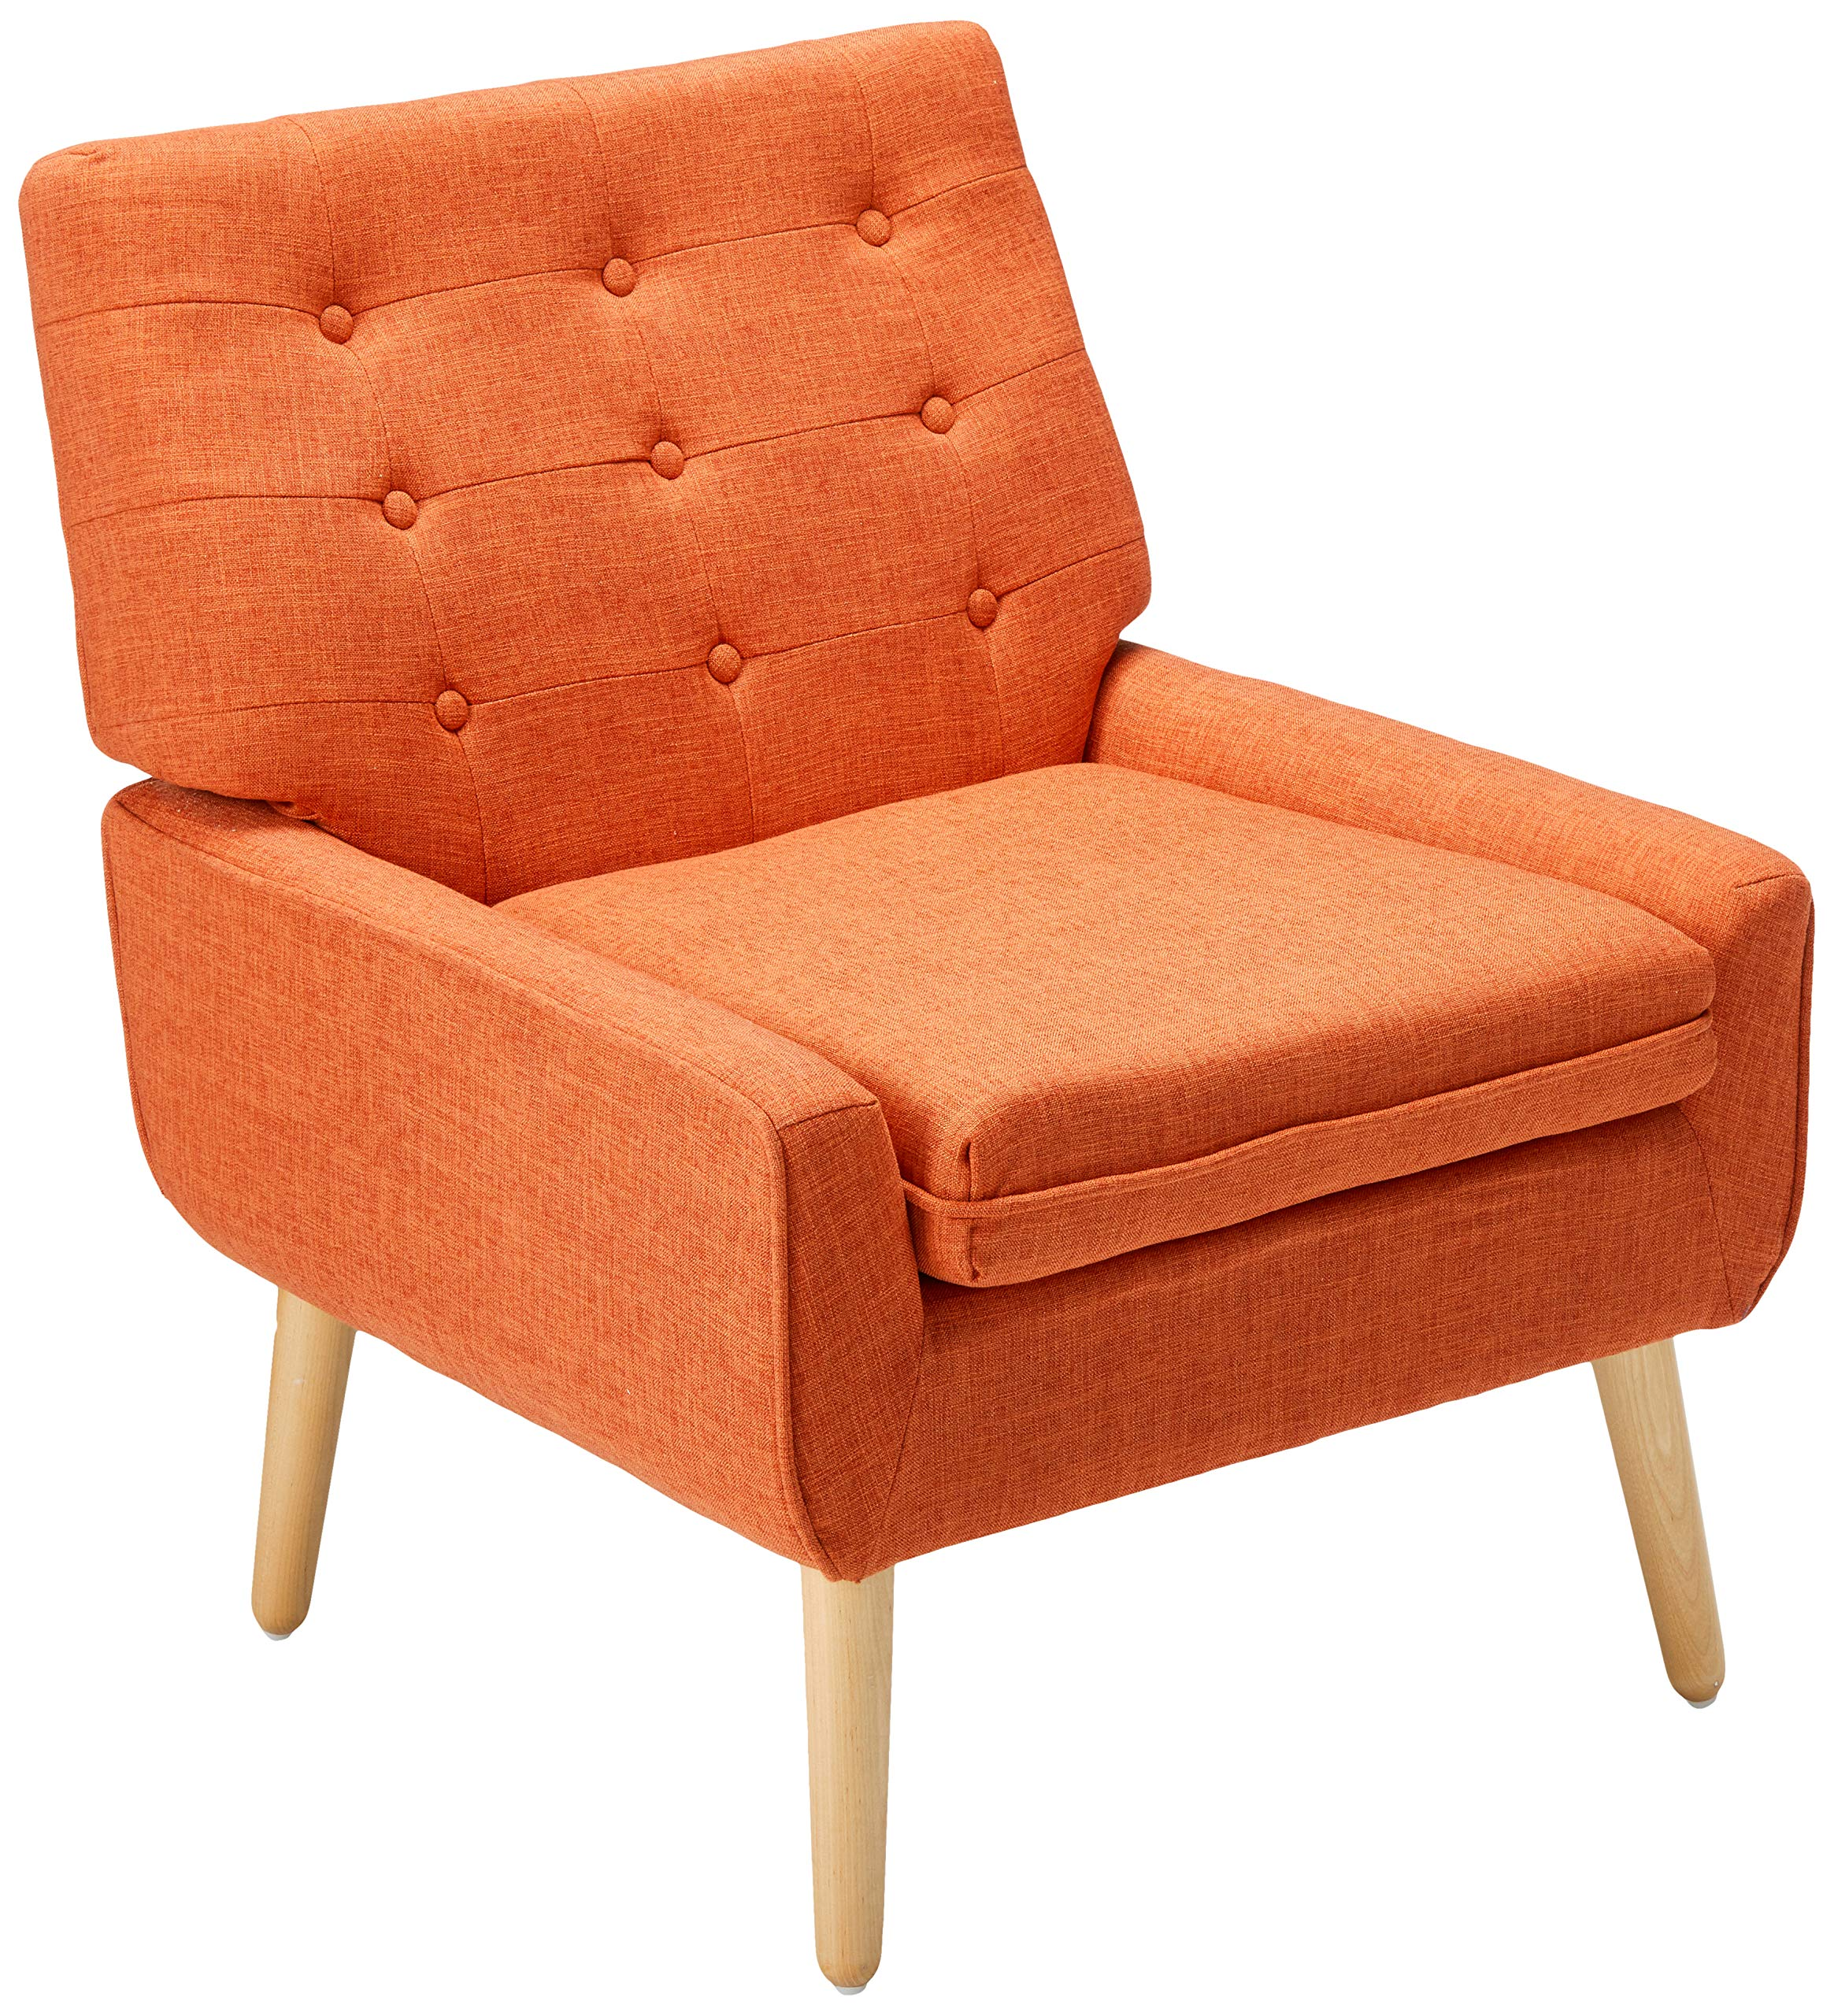 Christopher Knight Home 301751 Eonna Buttoned Mid Century Modern Muted Orange Fabric Chair by Christopher Knight Home